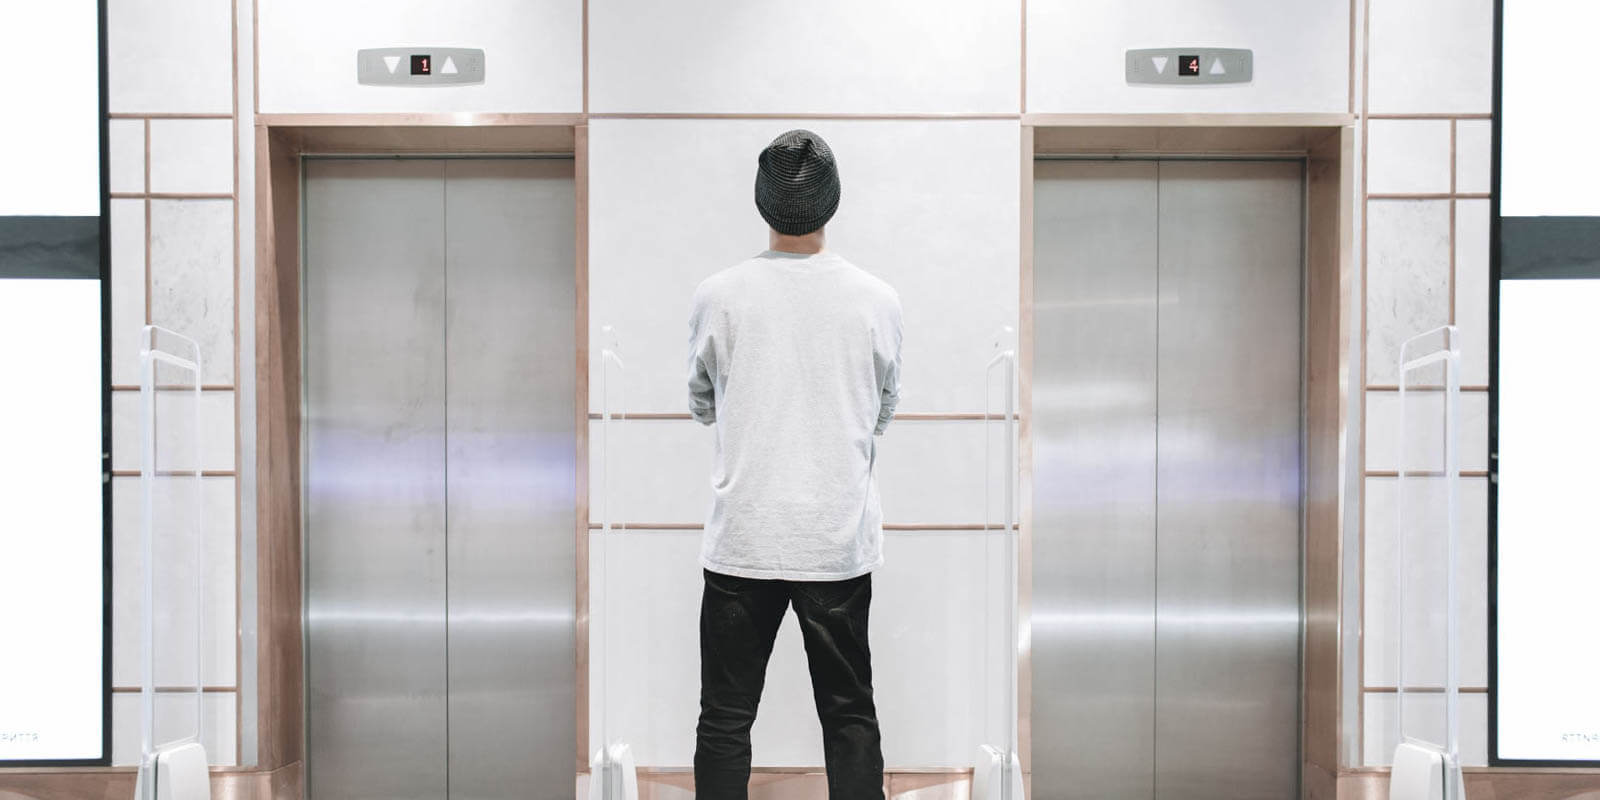 A man stands in fron of elevators, waiting to come